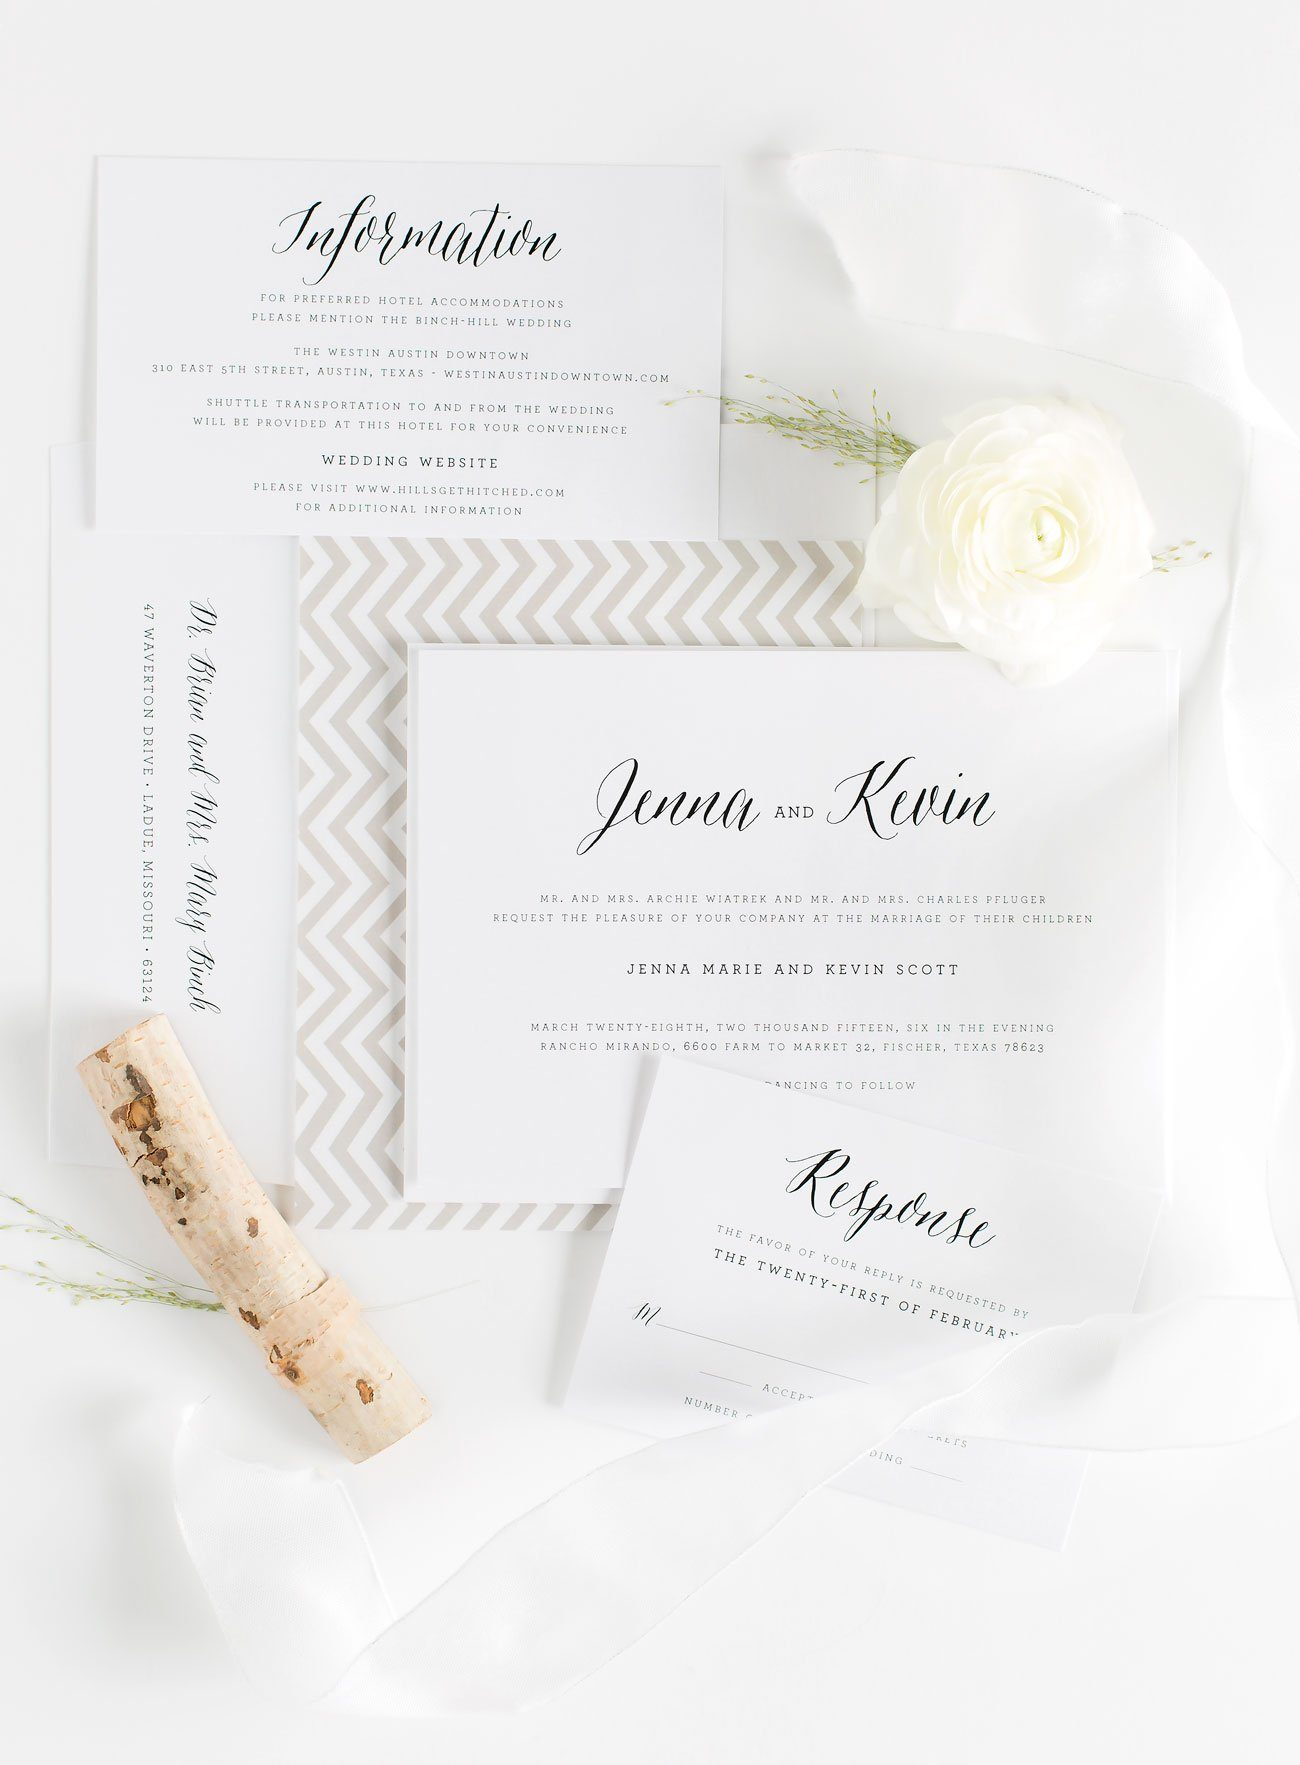 Rustic and Romantic Calligraphy Wedding Invitations in Neutrals